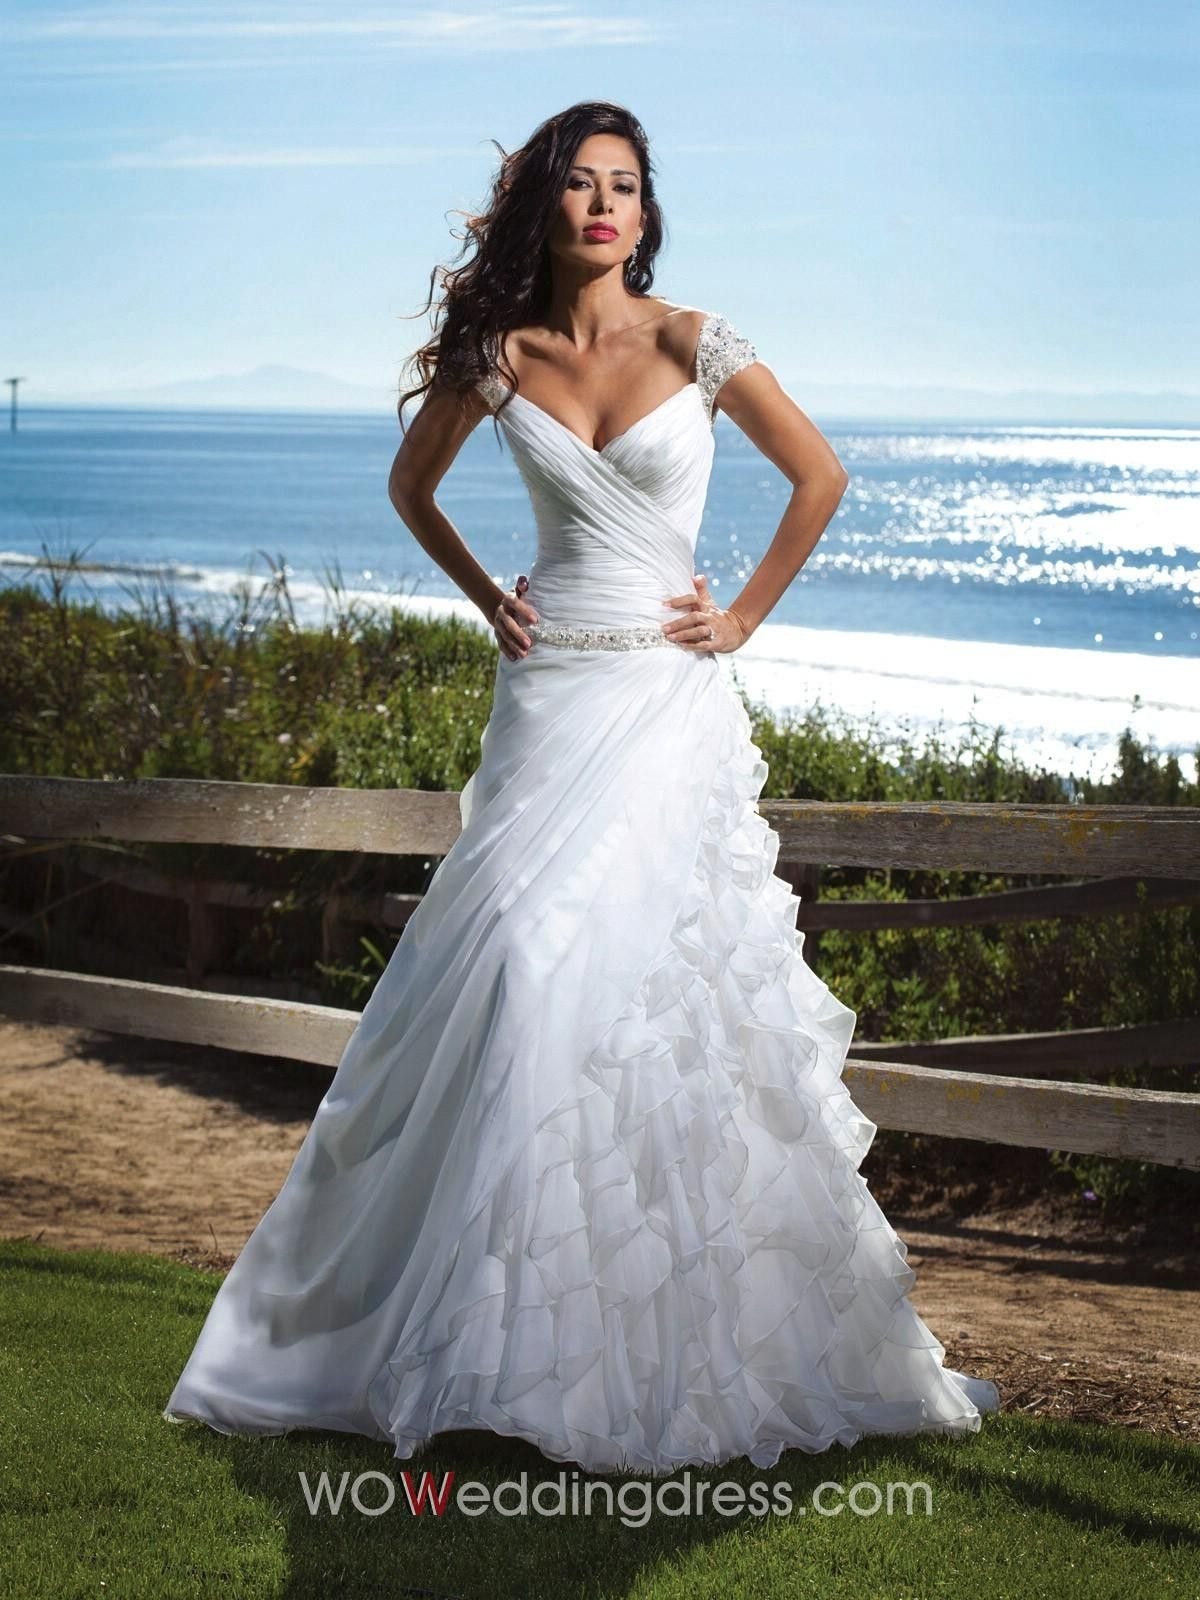 Wedding dresses with ruffles on skirt  Beachy cap sleeve lace wedding dress wow if i could pull this